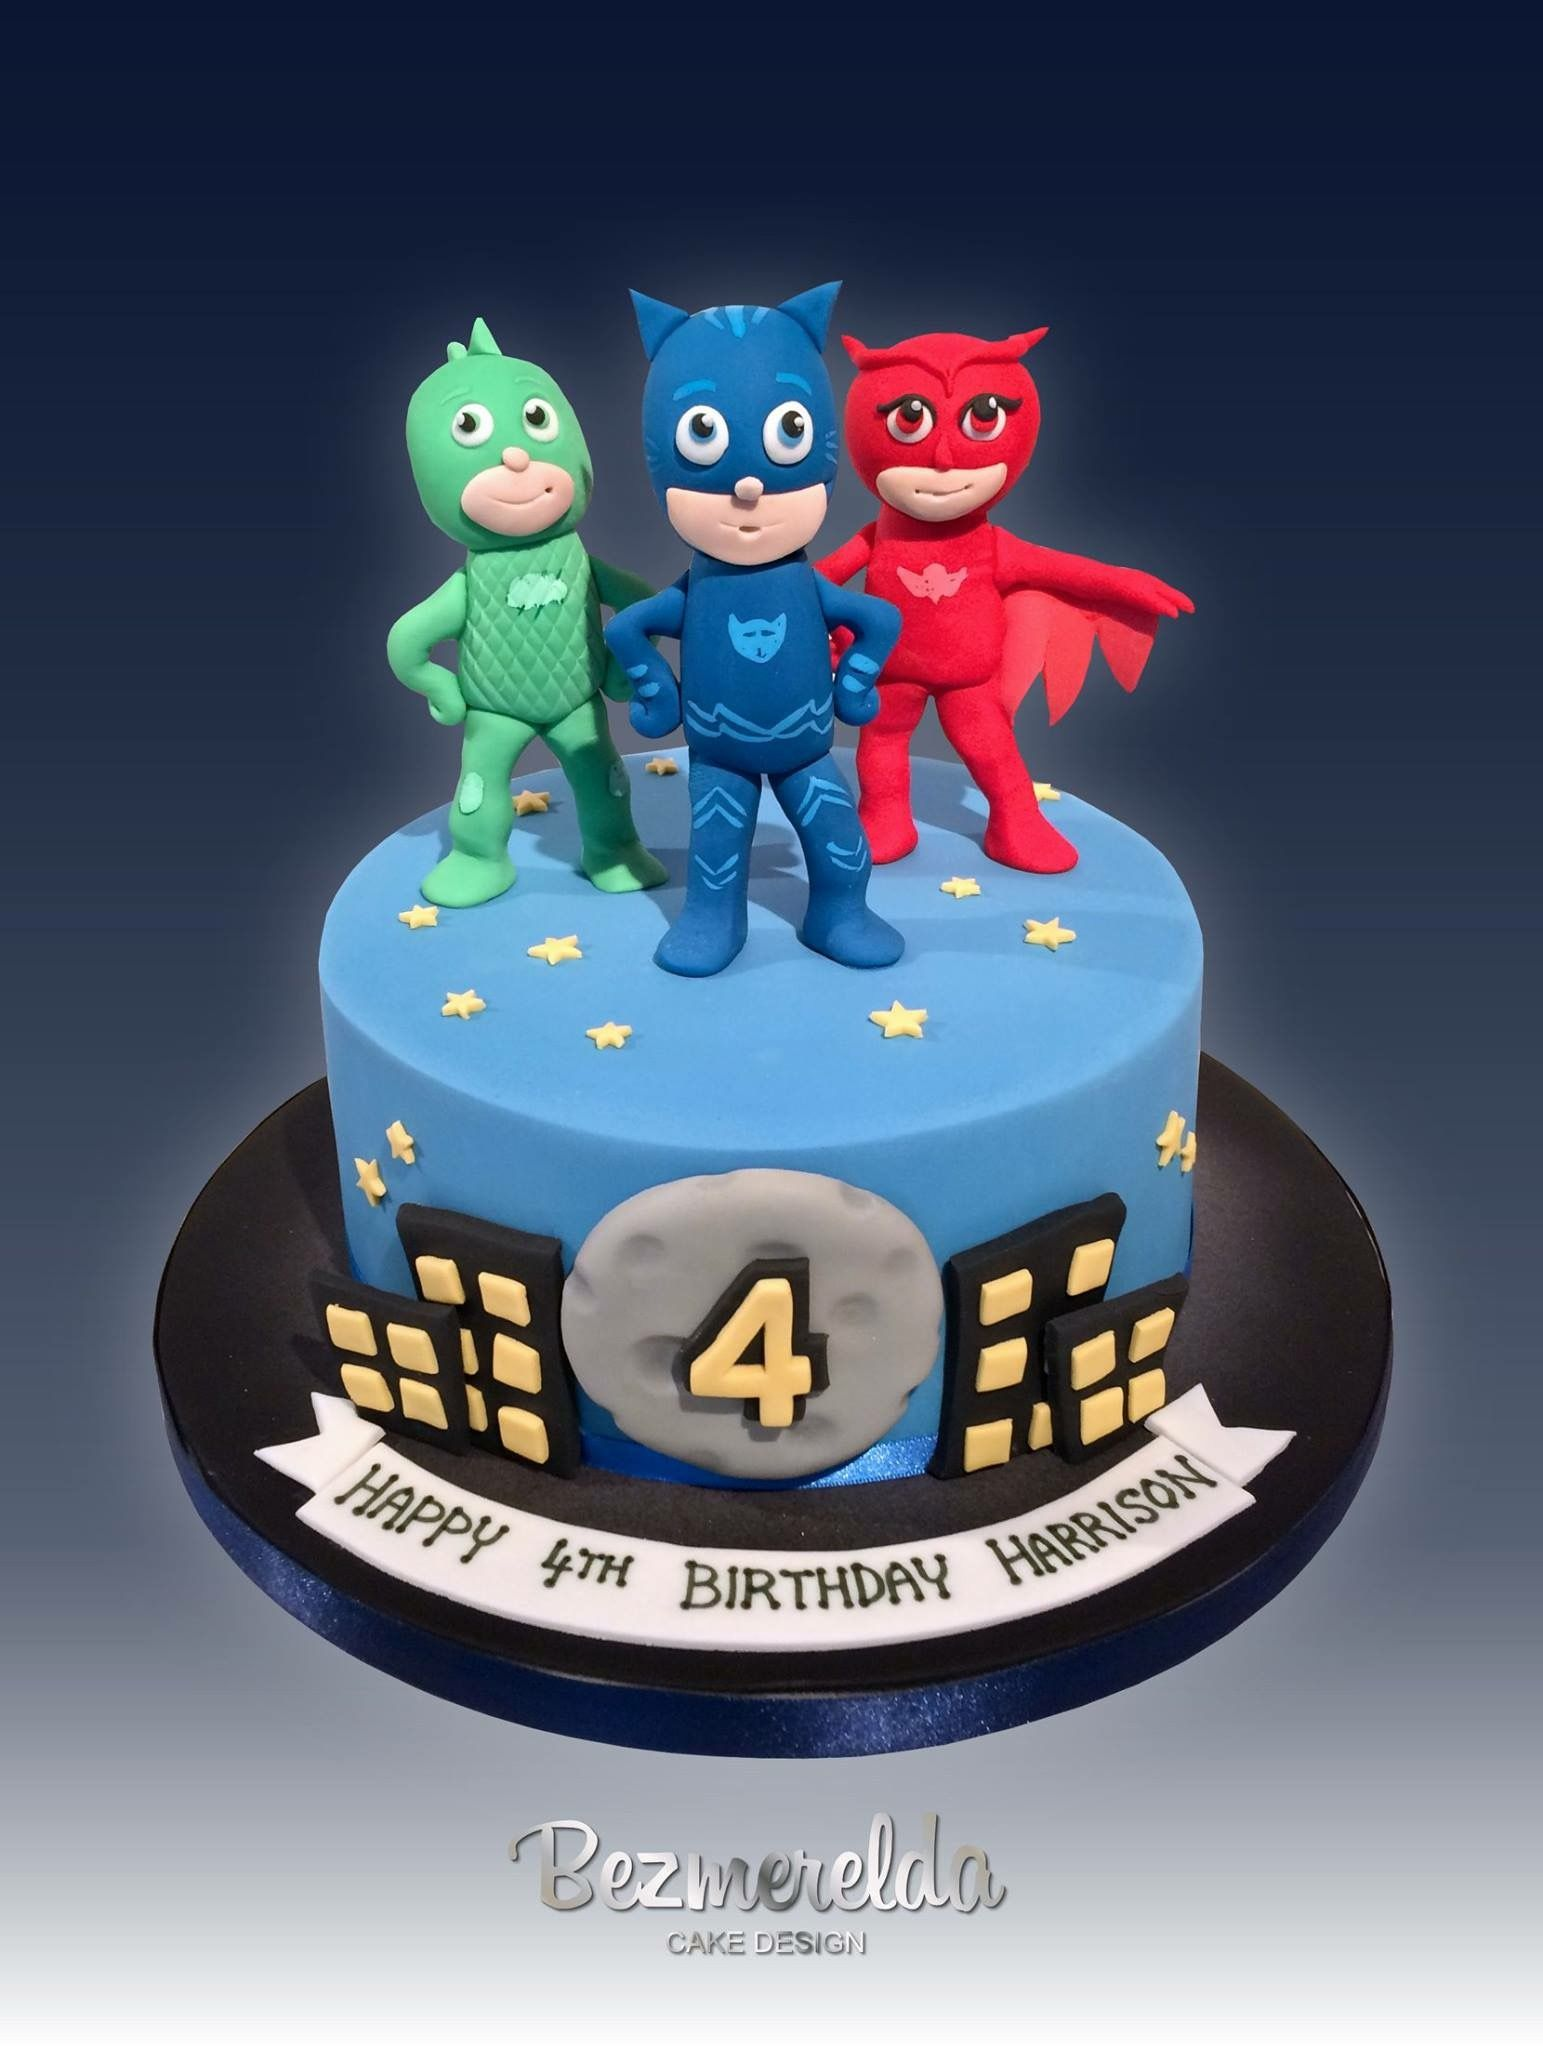 Pj Masks Cake Made By Bezmerelda Pj Masks Birthday Cake